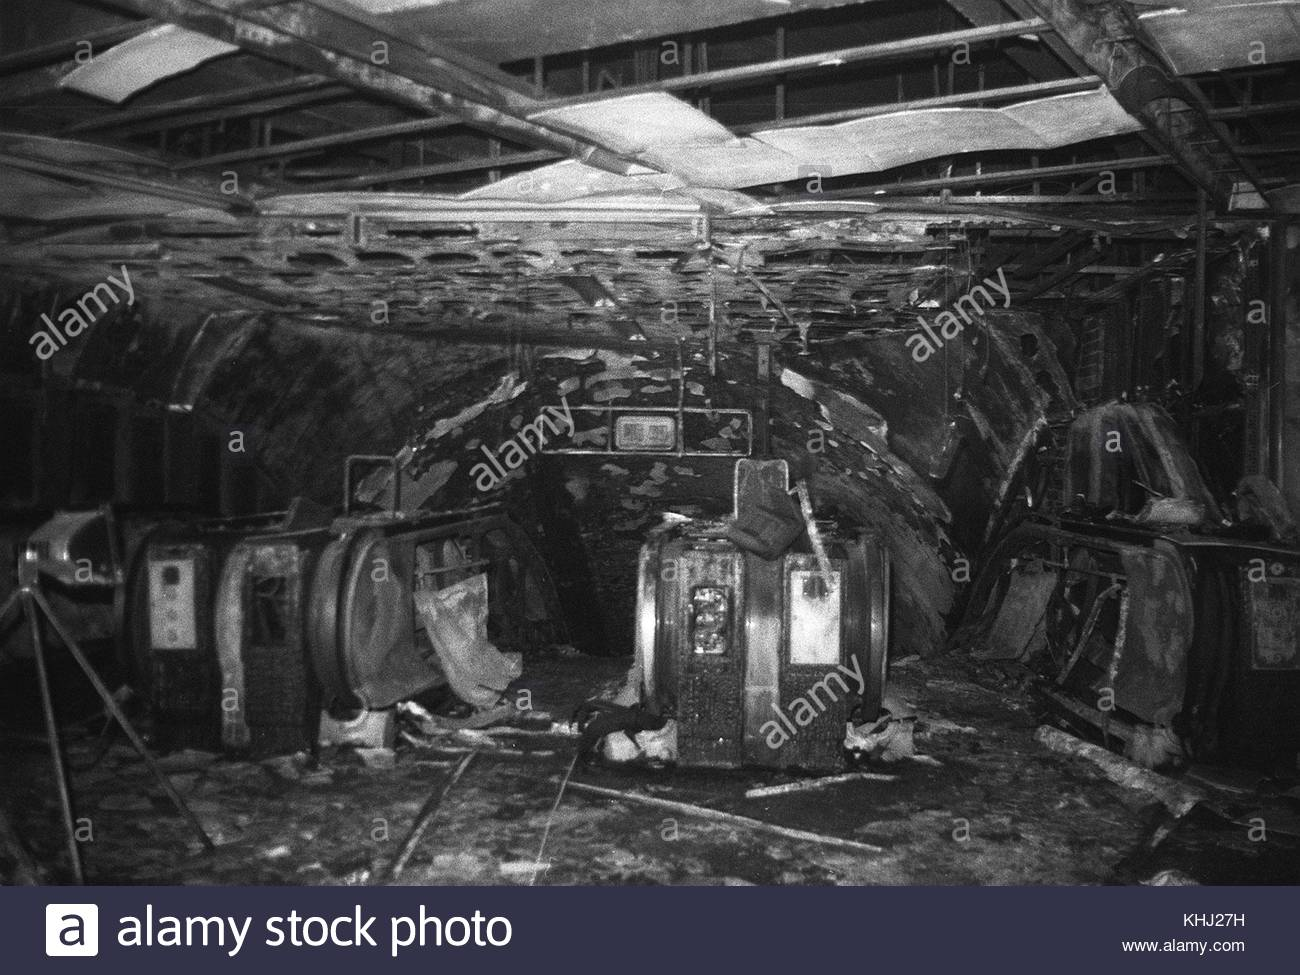 File photo dated 18/11/87 of the fire-damaged escalators at King's Cross underground station in London. The - Stock Image